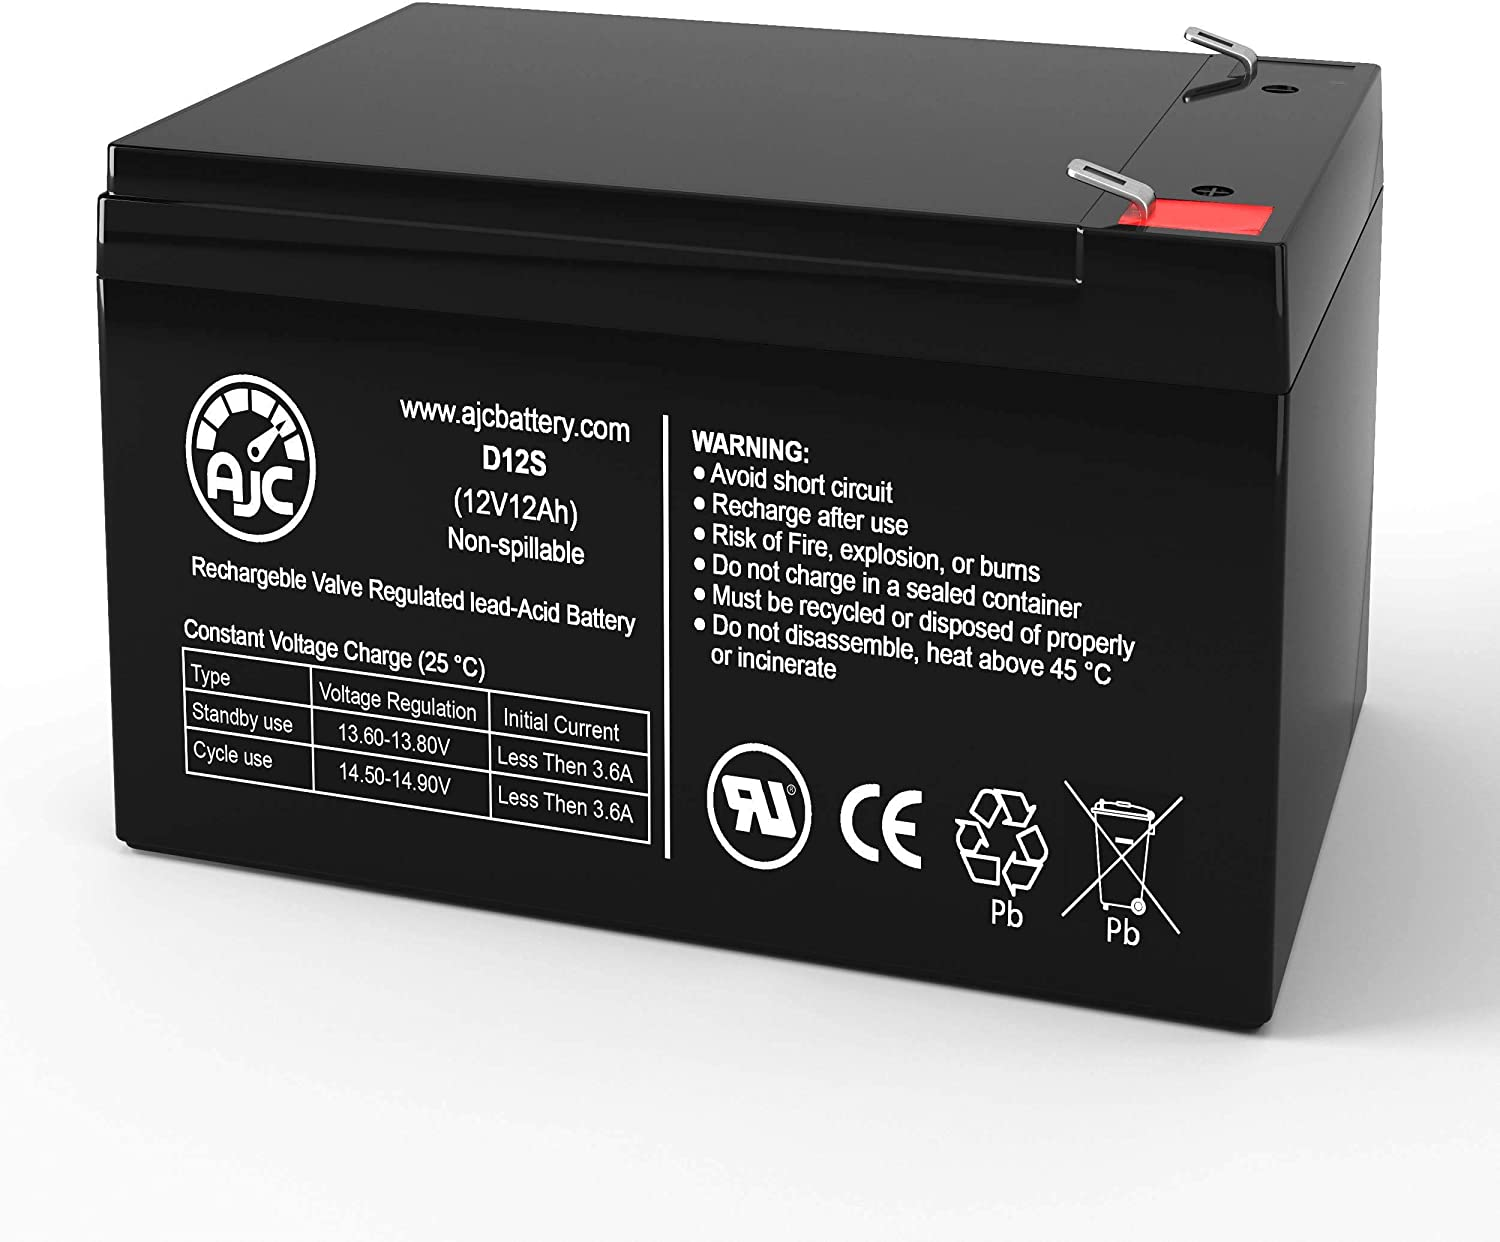 AJC Battery Compatible with Peg Perego Case Ih Power Scoop Tractor 12V 12Ah Ride-On Toys Battery